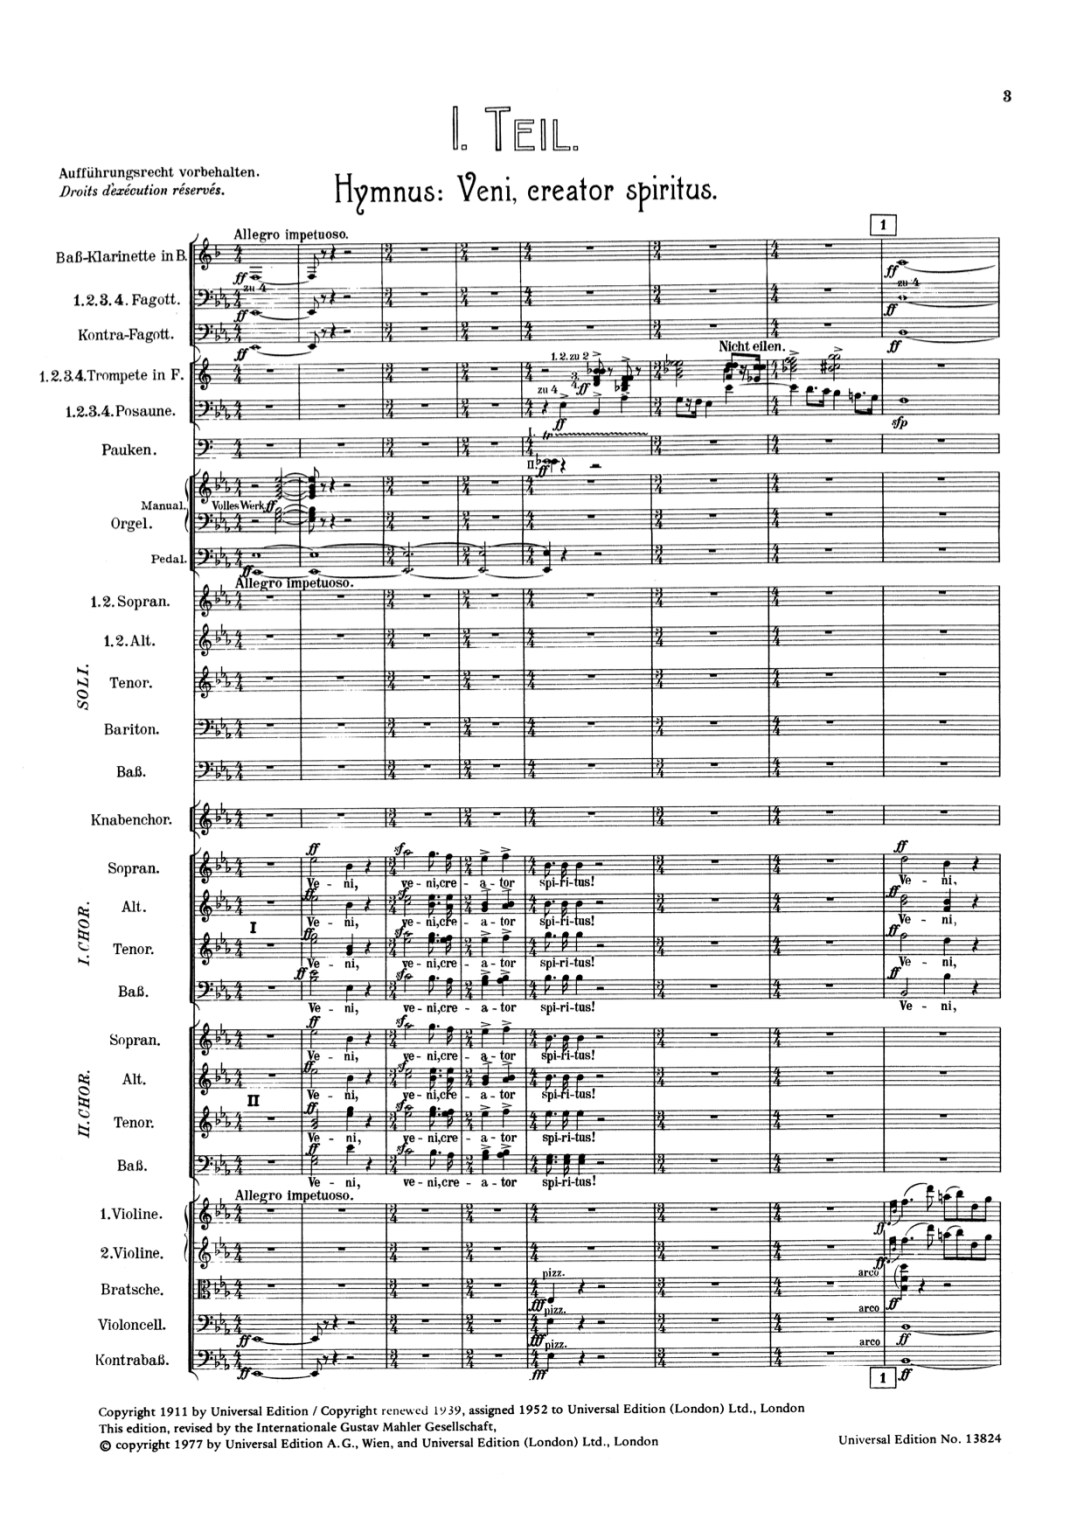 Mahler Symphony no 8 first page of score